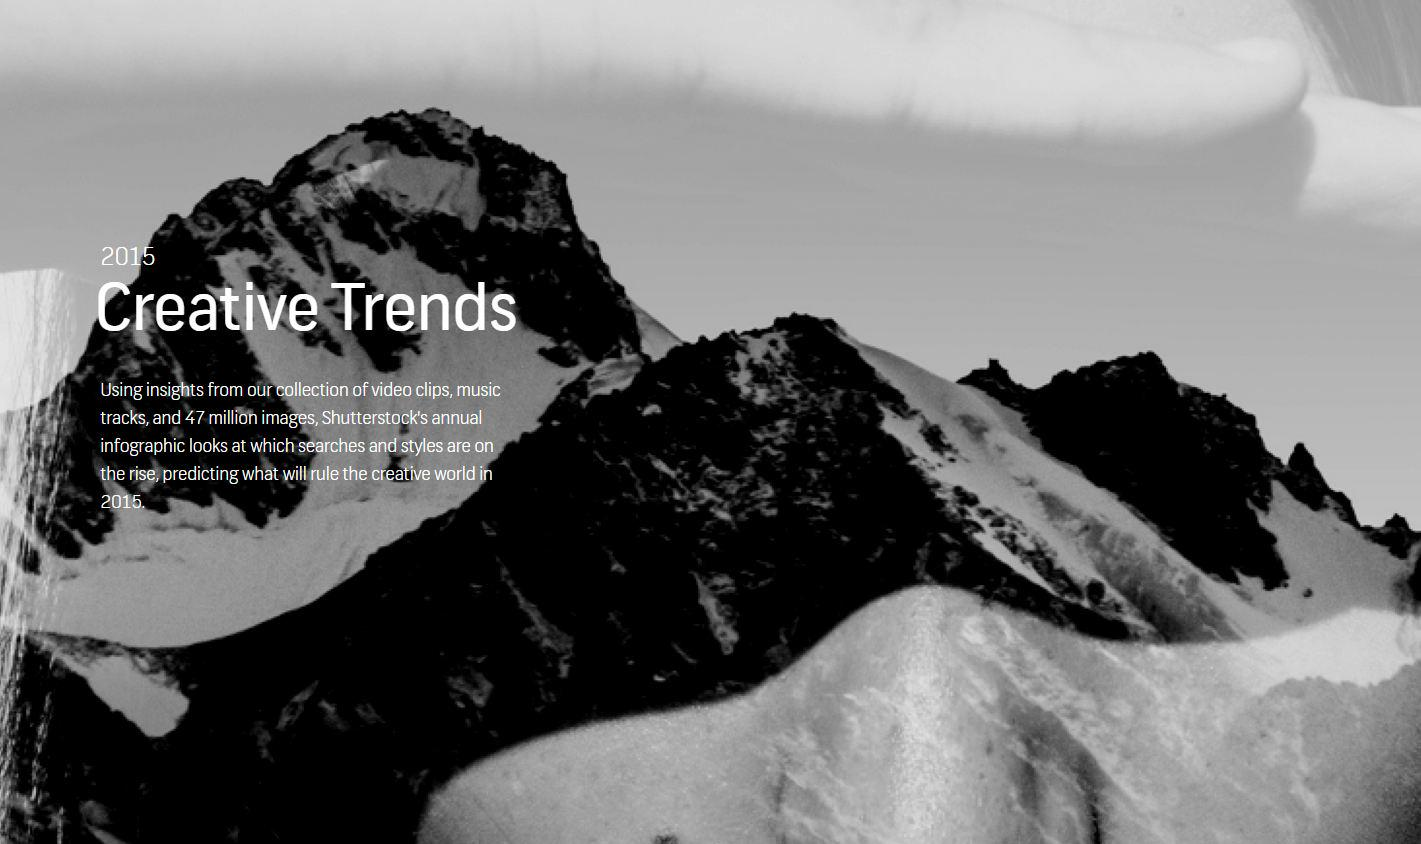 Shutterstock has released its 2015 Creative Trends Report - read more here: http://t.co/2RMHpQVHT9 #creative http://t.co/xVWH2XEJdI